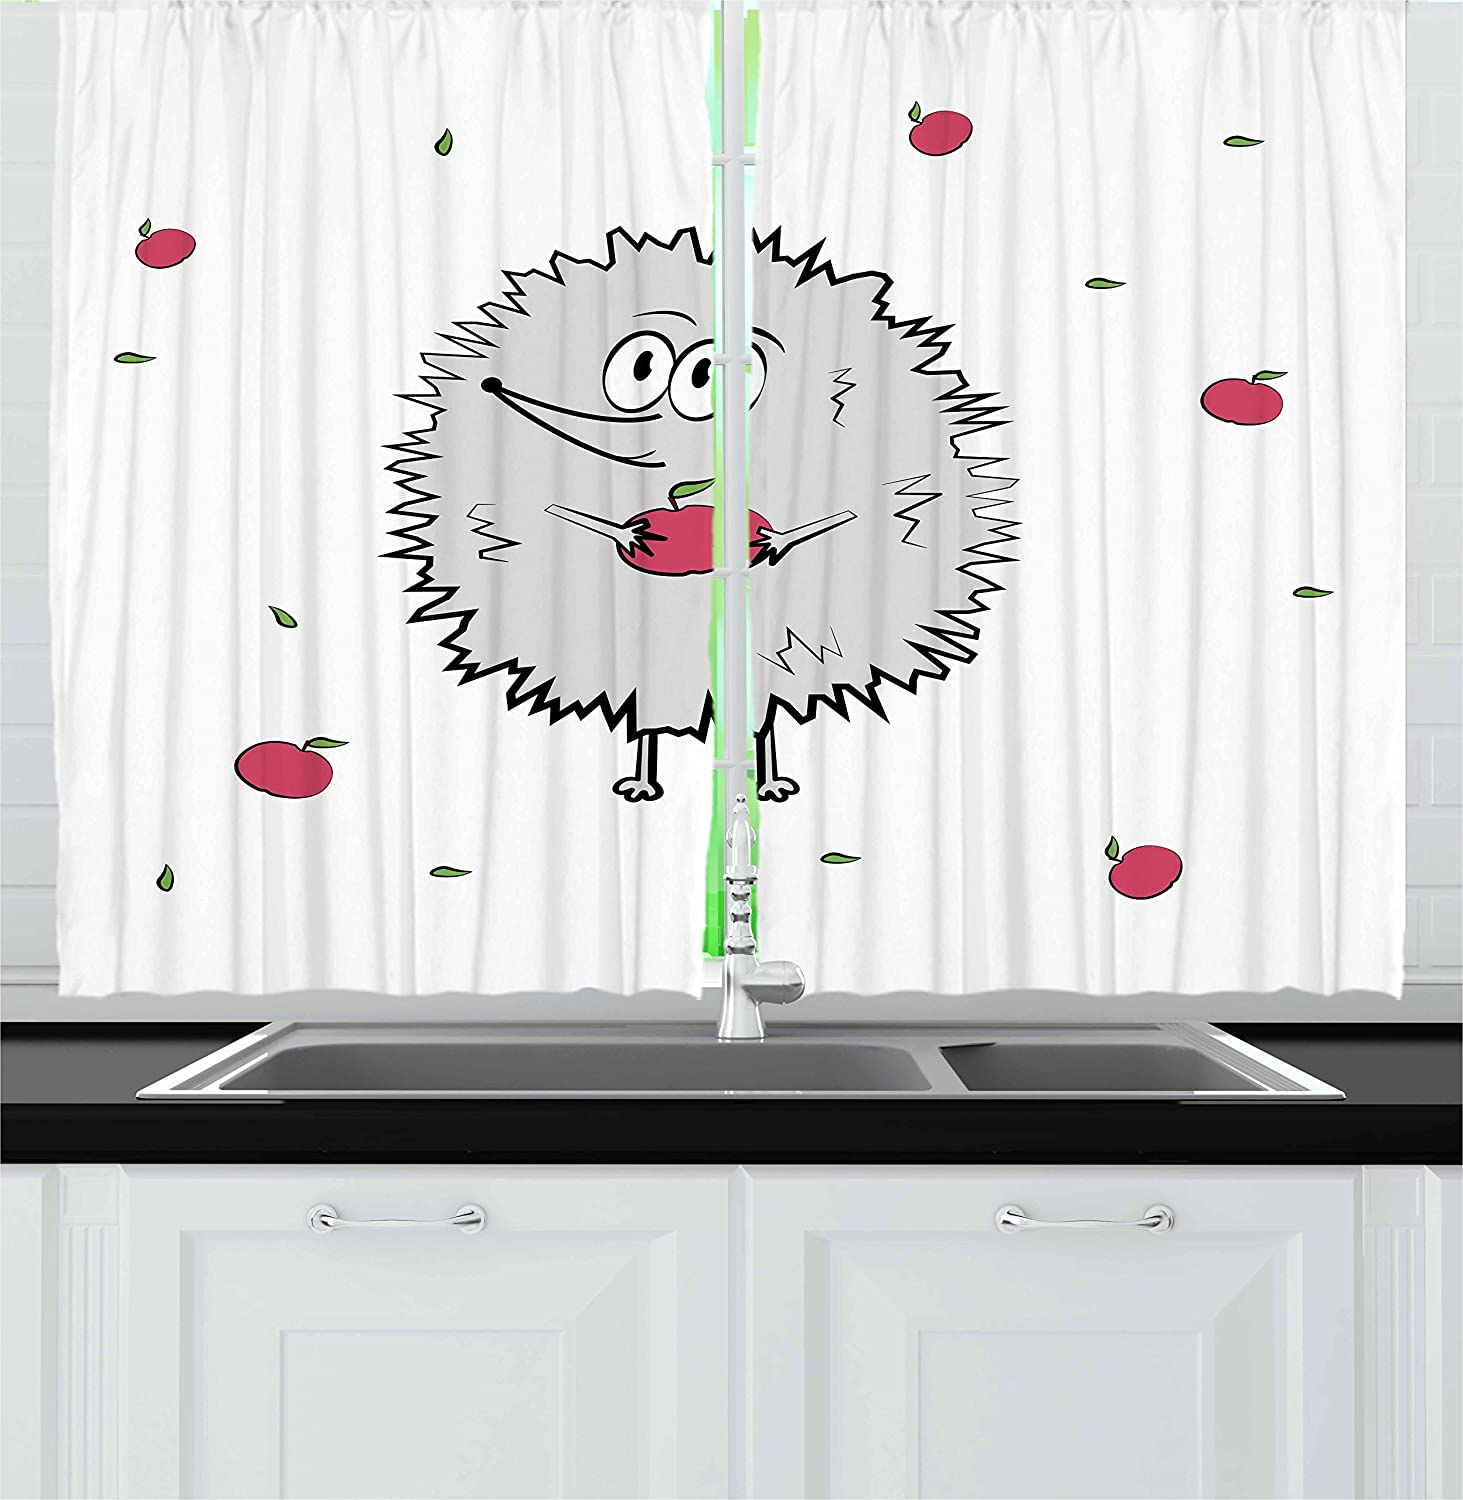 Amazon Com Ambesonne Hedgehog Kitchen Curtains Happy Animal Apples And Leaves Doodle Style Cartoon Drawing Fun Illustration Window Drapes 2 Panel Set For Kitchen Cafe Decor 55 X 39 Grey Pink Green Home